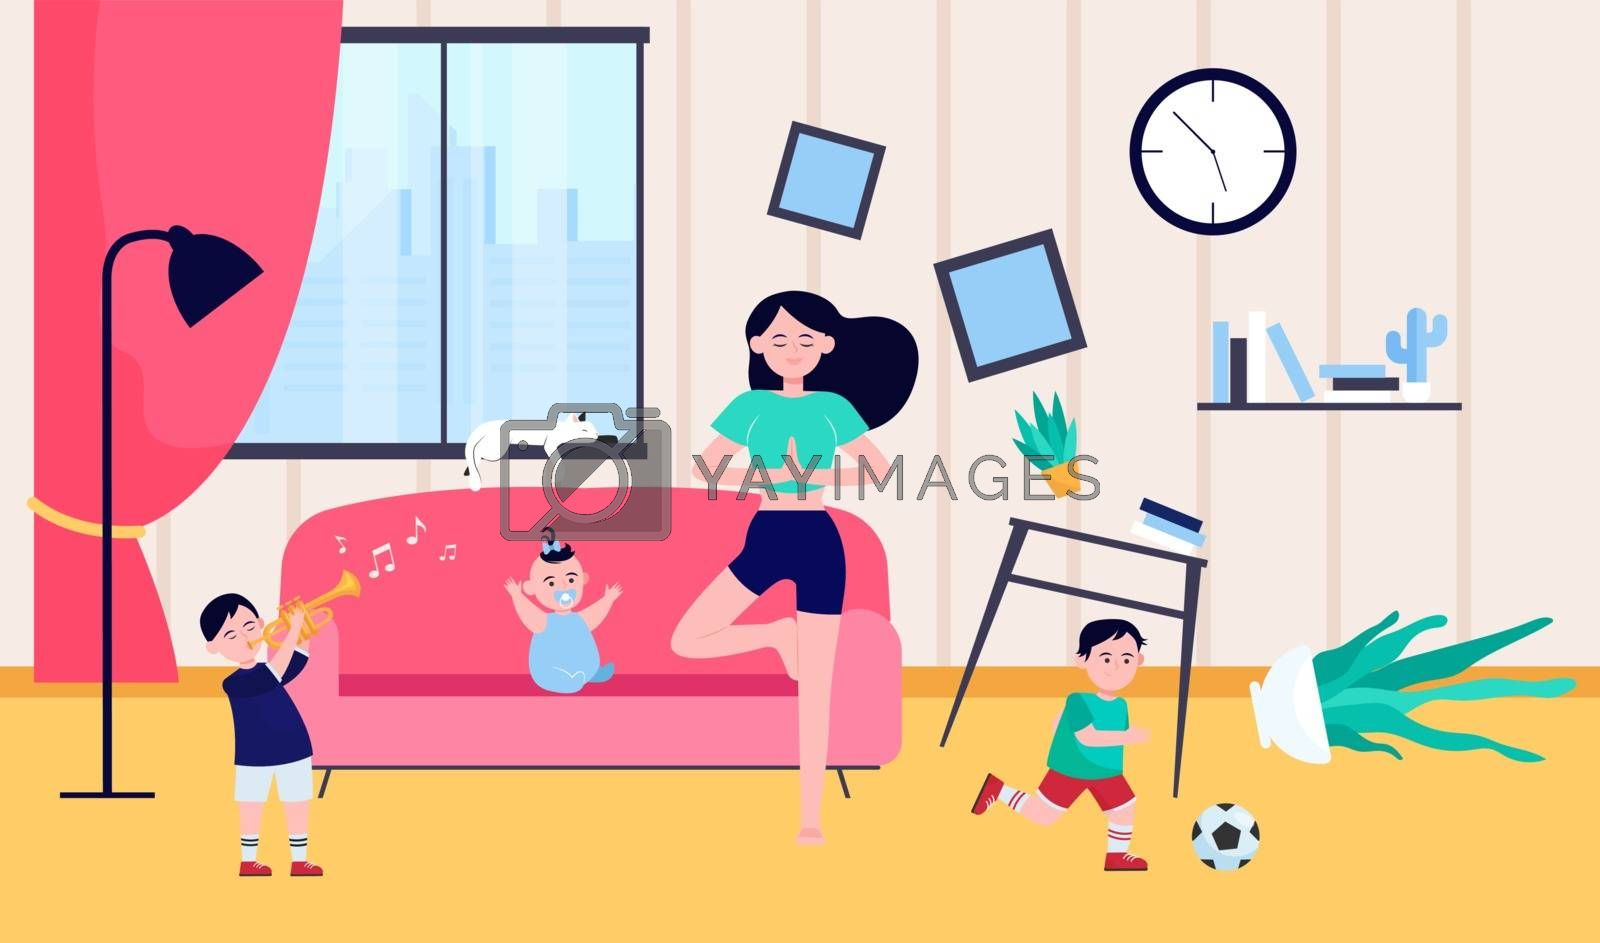 Calm mother doing yoga among naughty kids. Children making chaos while mom meditating at home. Vector illustration for motherhood, childhood, stress relief concept